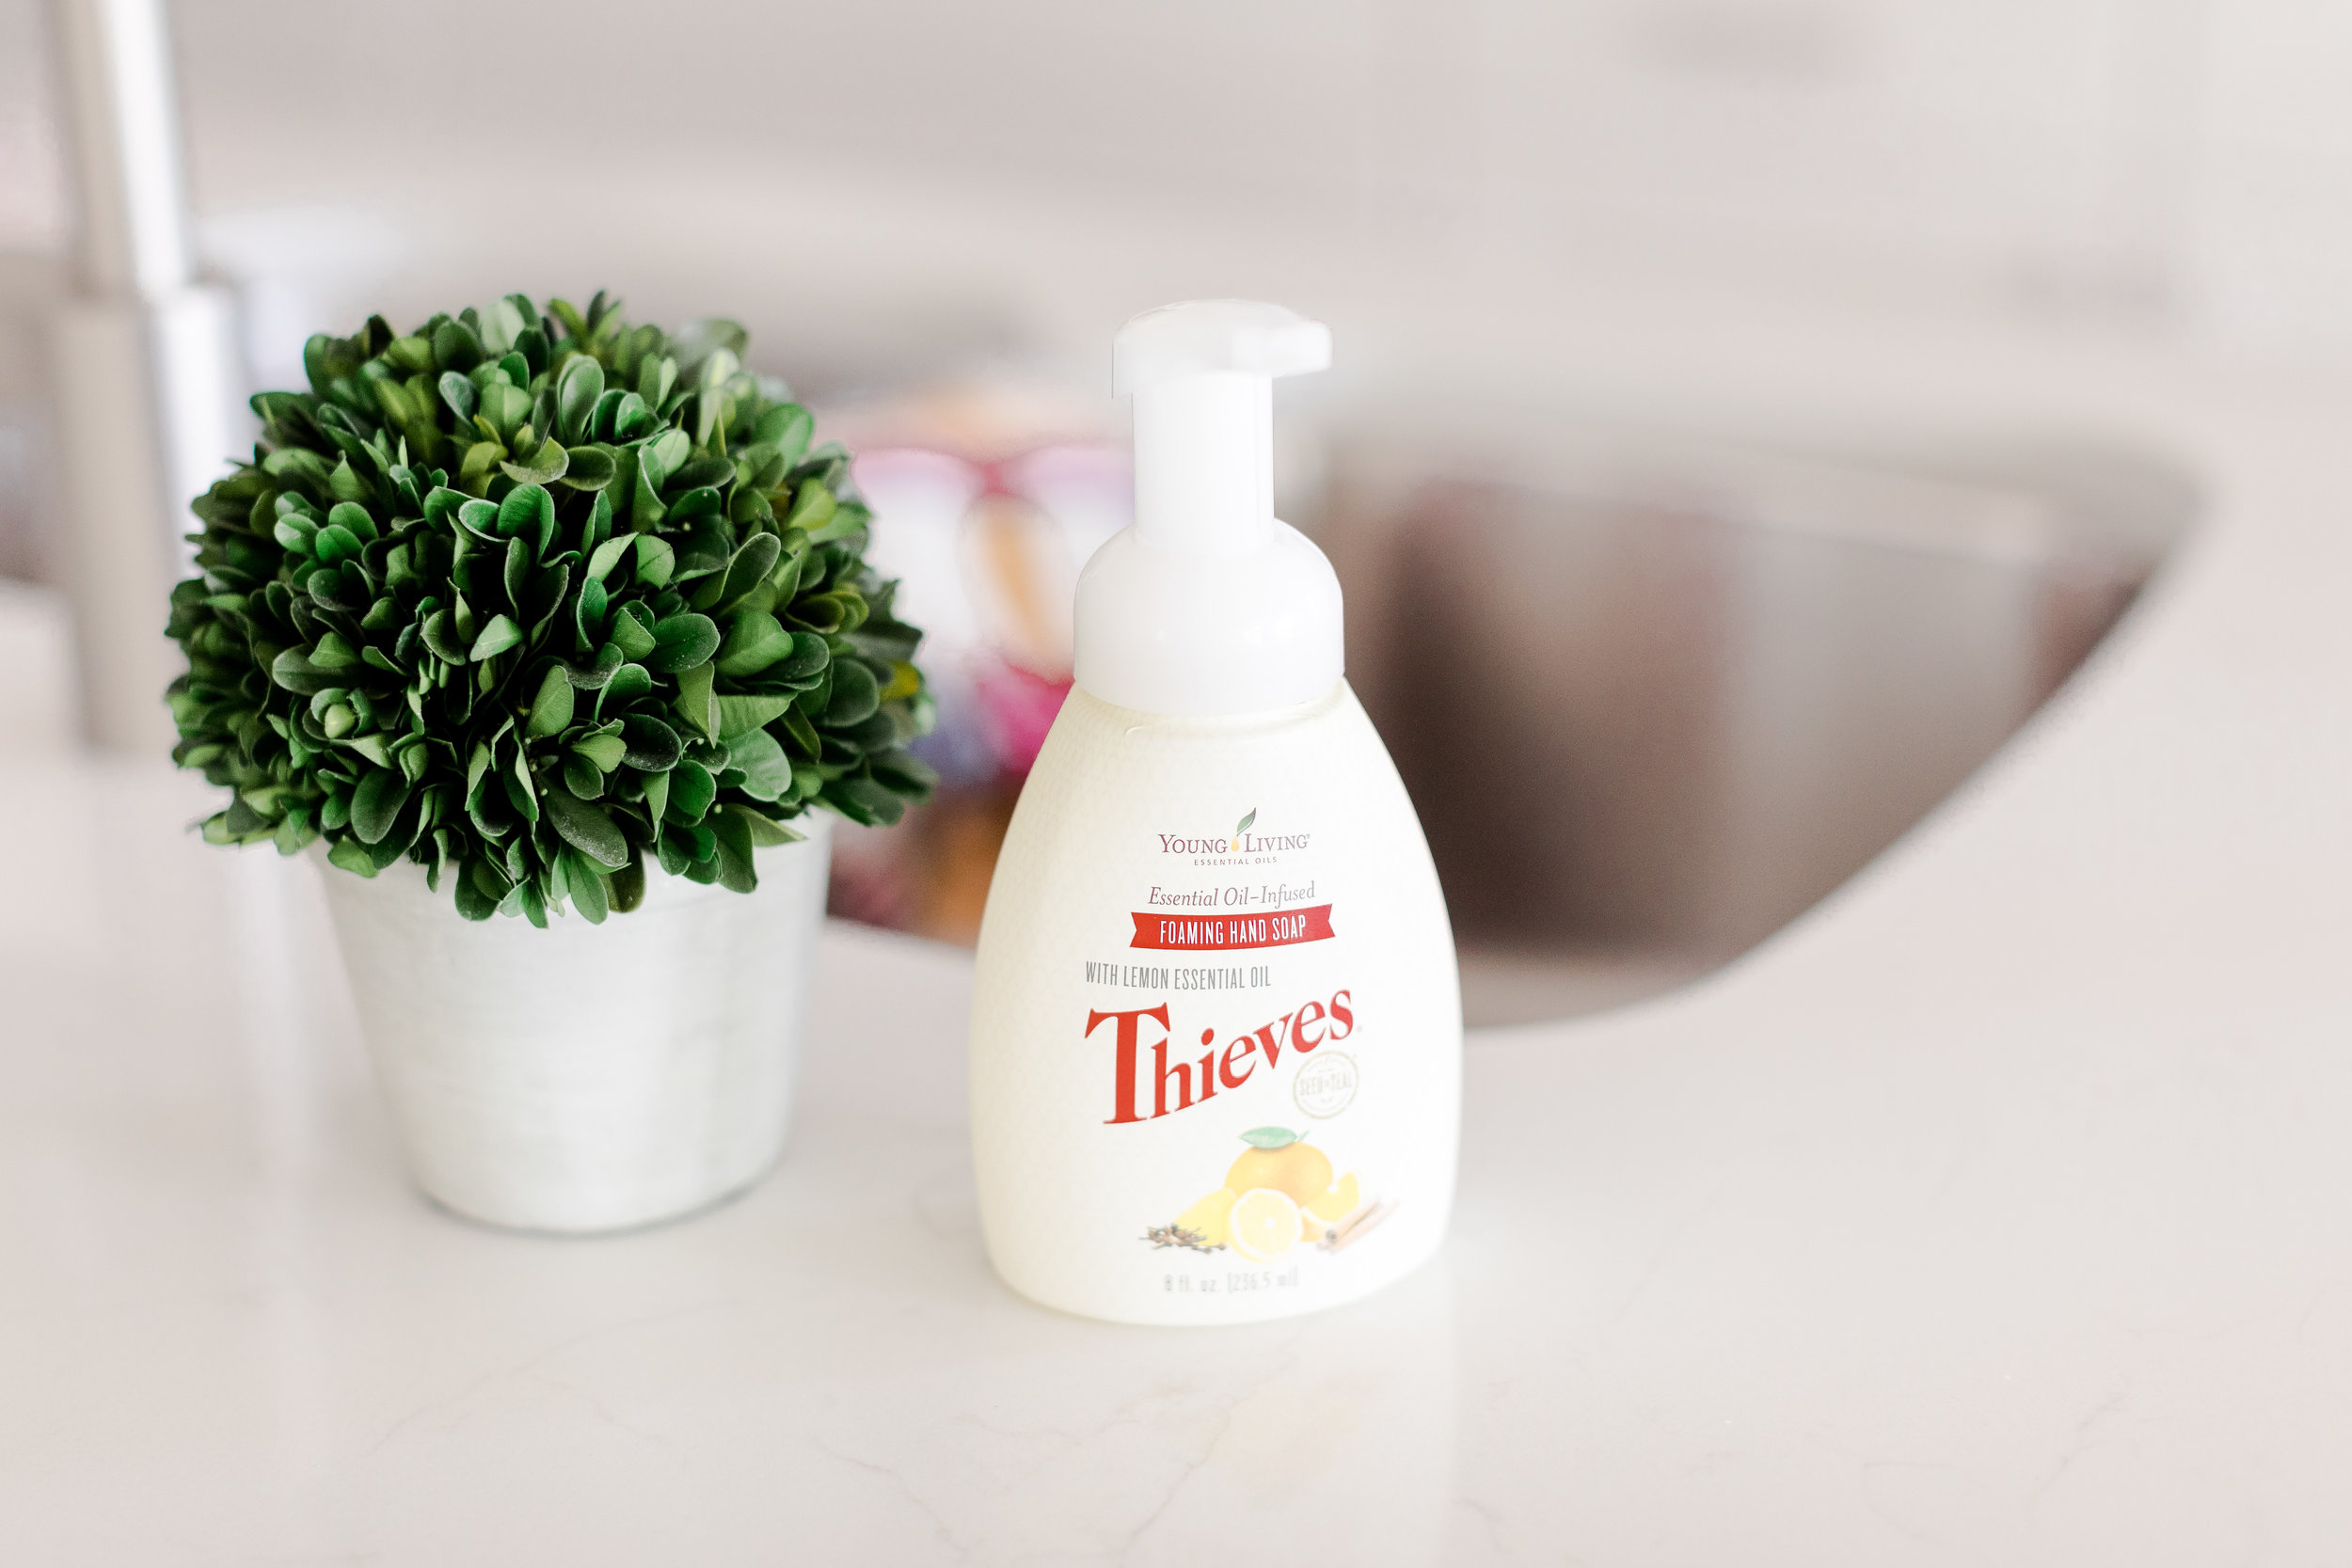 Young Living Thieves hand soap